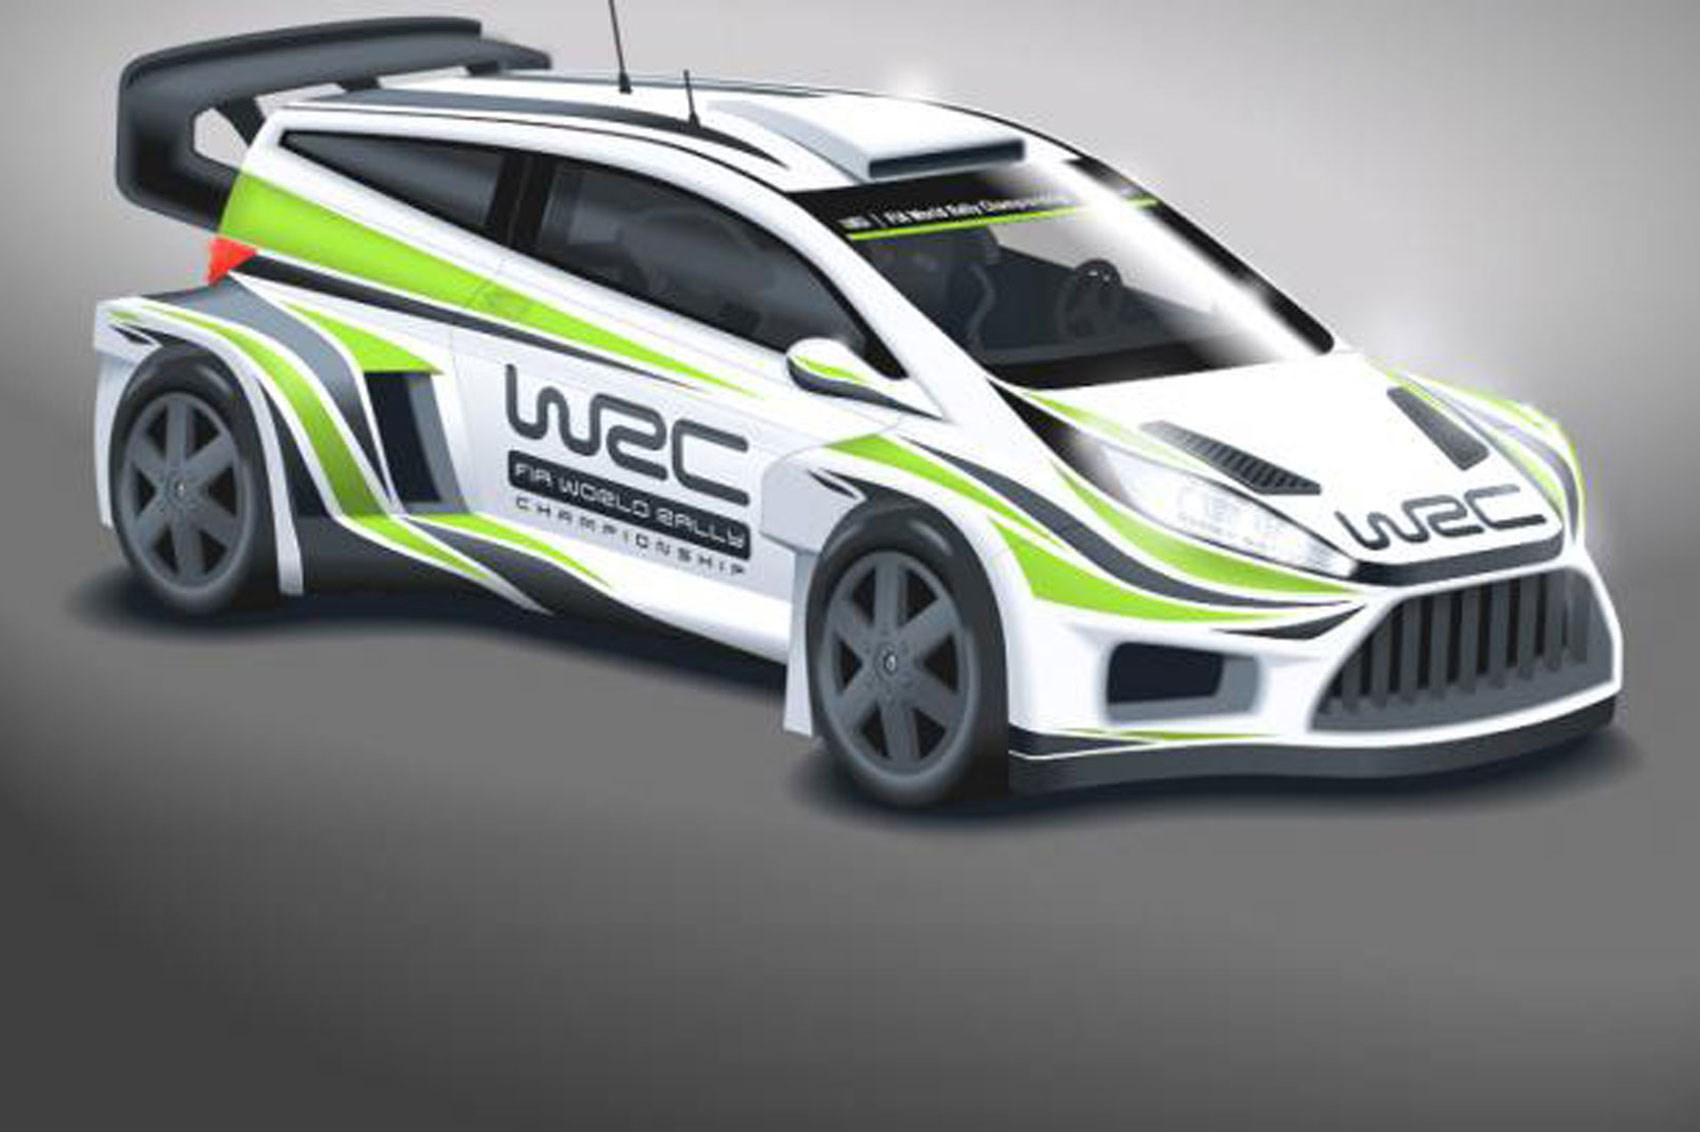 Ultrablogus  Unique Wild New Look For Wrc Cars In  By Car Magazine With Marvelous Wrc Cars Will Get Wider Bodies Bigger Wings And More Power For  With Awesome Toyota Corolla Interior Images Also  Chevy Malibu Interior In Addition Honda Accord  Interior And  Impala Ls Interior As Well As  Saturn Ion Interior Additionally  Cadillac Cts Interior From Carmagazinecouk With Ultrablogus  Marvelous Wild New Look For Wrc Cars In  By Car Magazine With Awesome Wrc Cars Will Get Wider Bodies Bigger Wings And More Power For  And Unique Toyota Corolla Interior Images Also  Chevy Malibu Interior In Addition Honda Accord  Interior From Carmagazinecouk